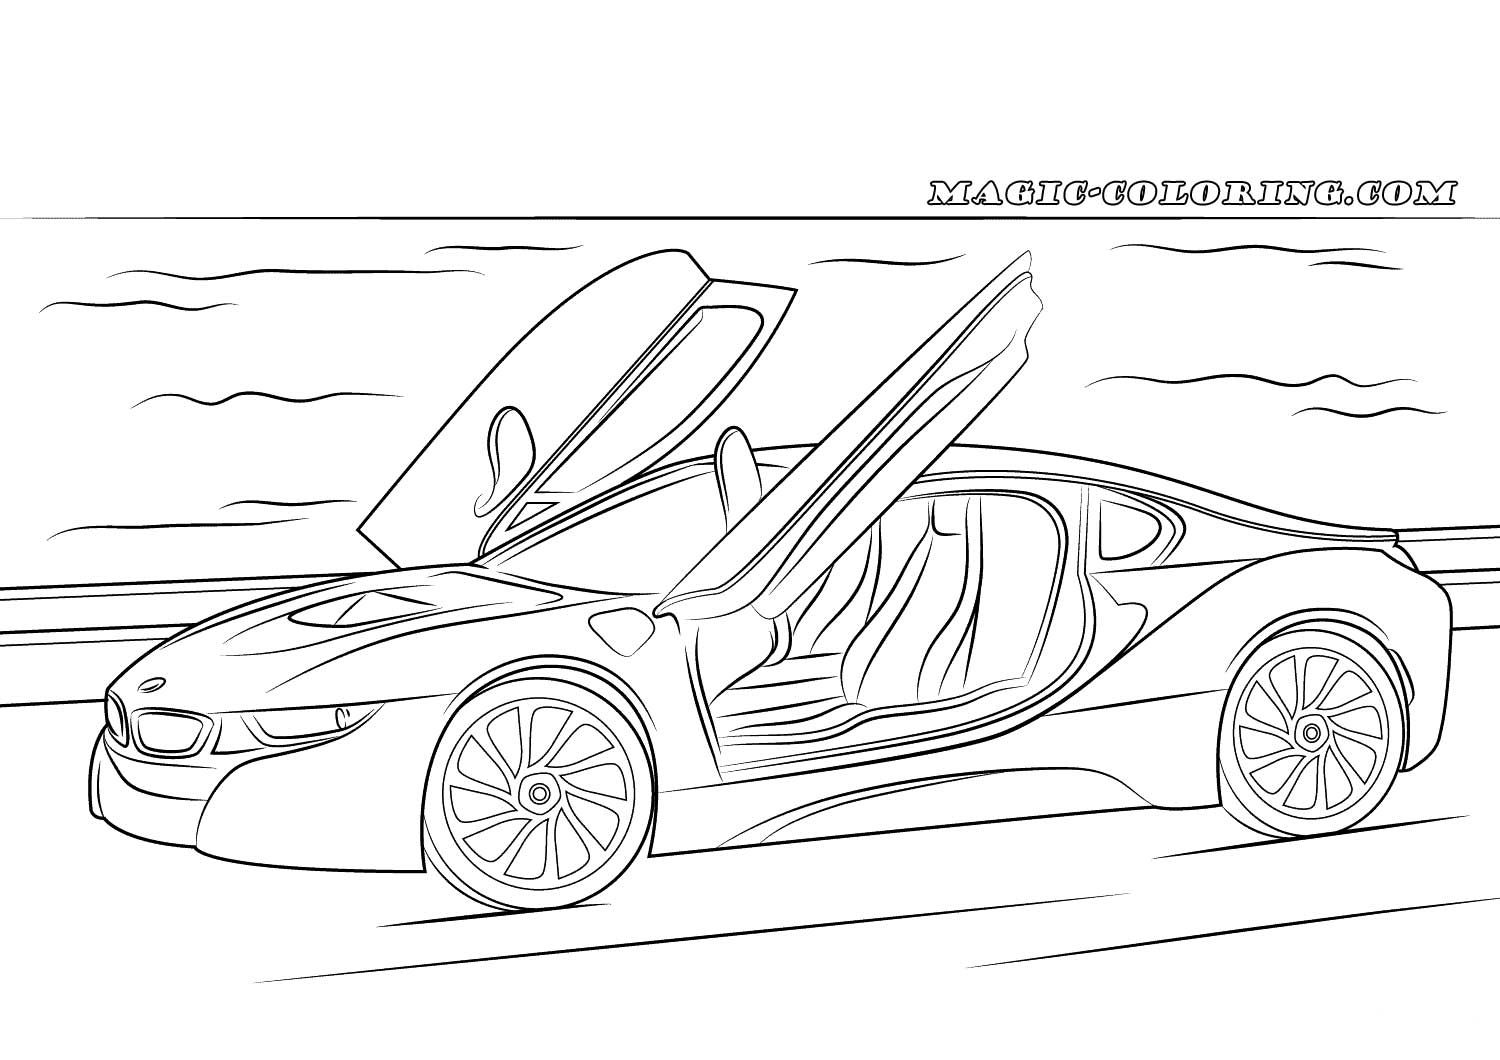 2015 Bmw I8 Coloring Page Cars Coloring Pages Disney Coloring Pages Mandala Coloring Pages